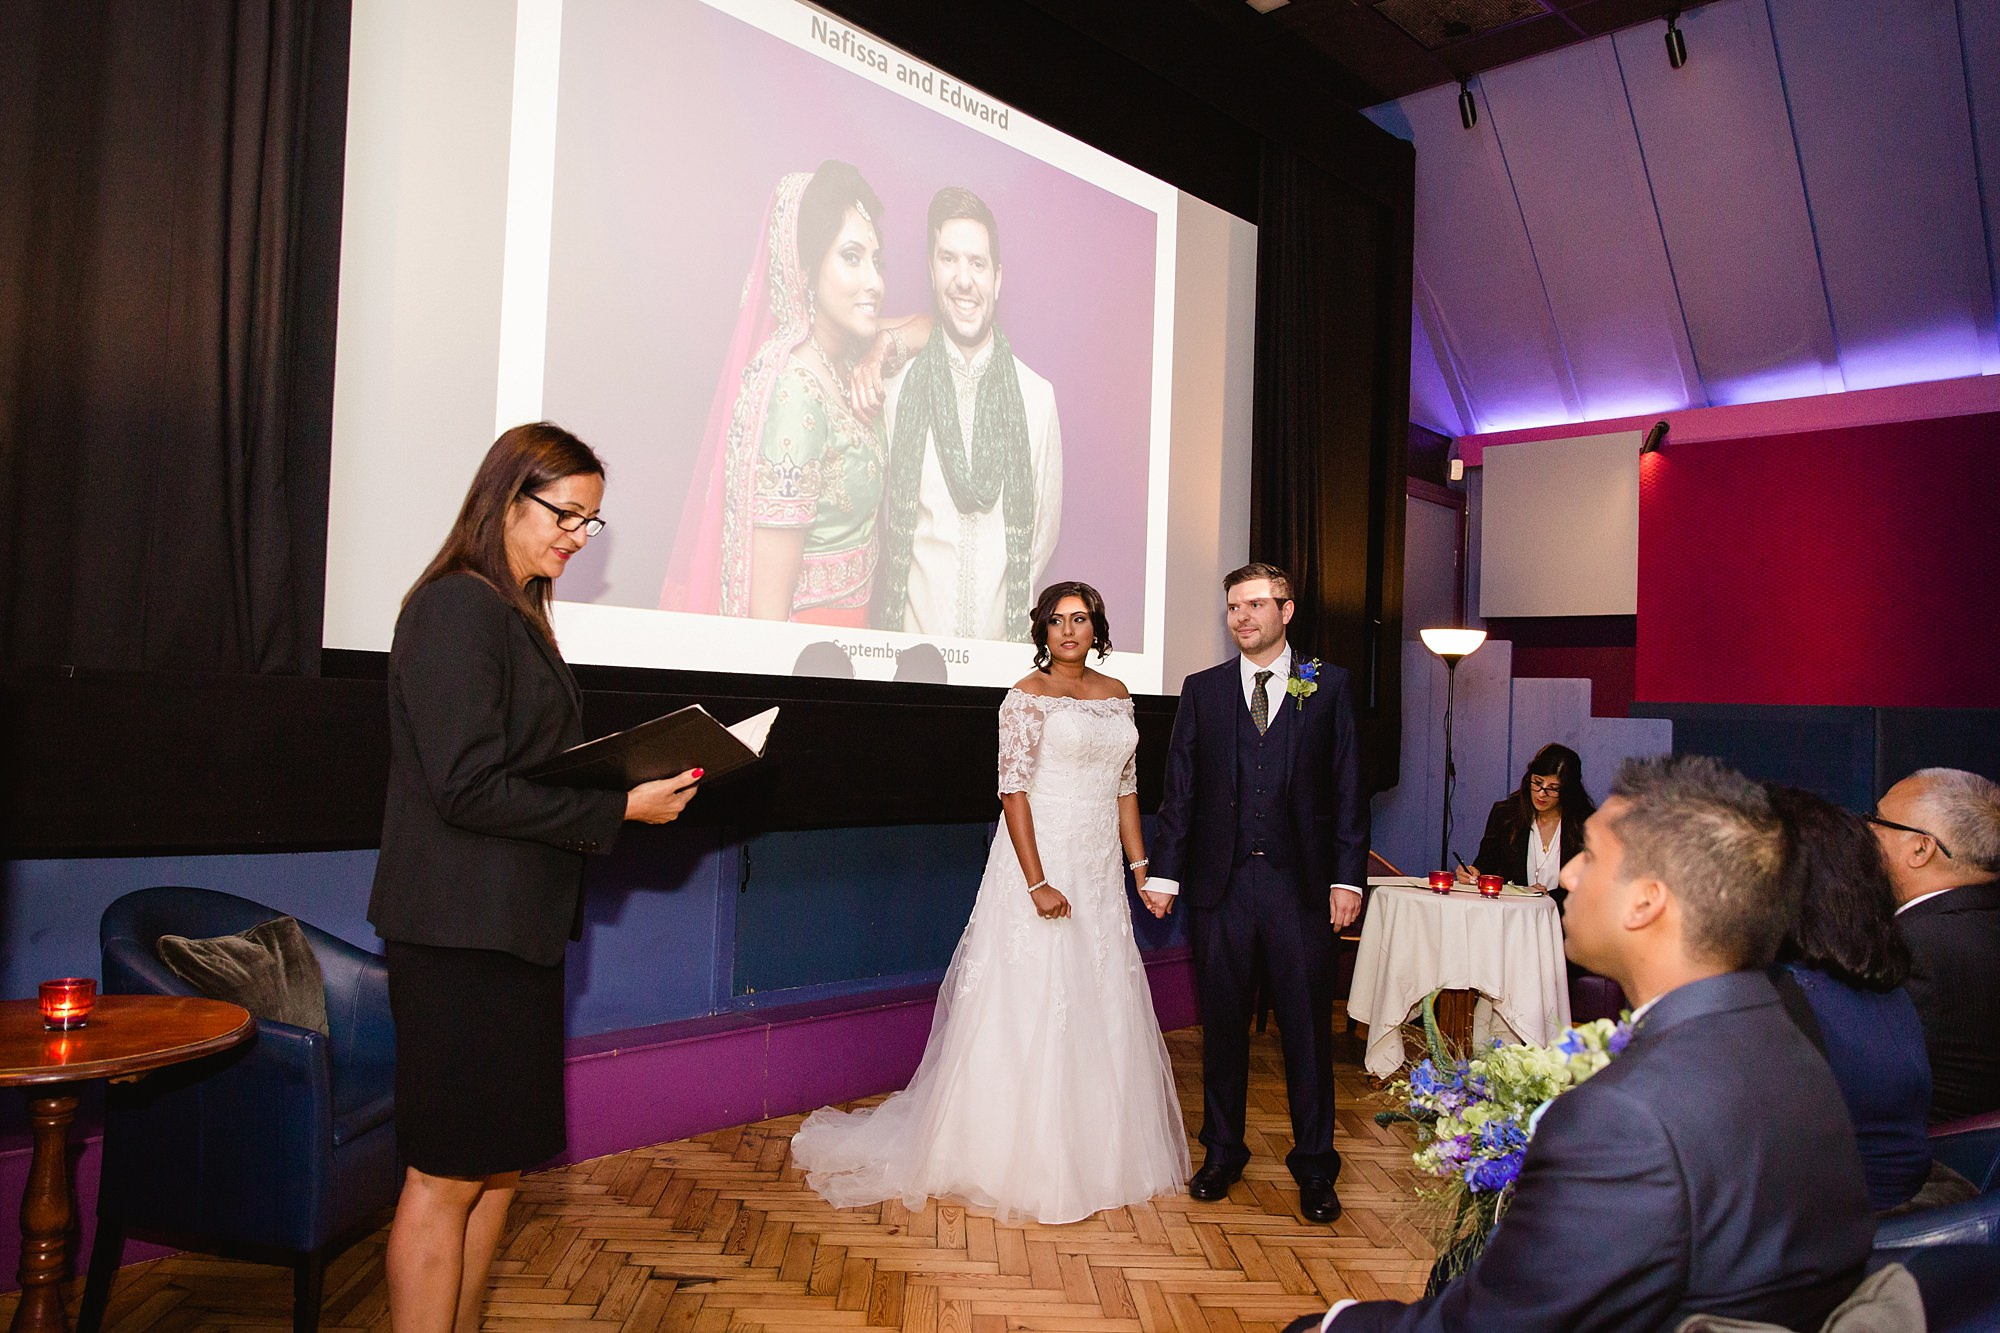 Paradise by way of Kensal Green wedding ceremony at Lexi cinema